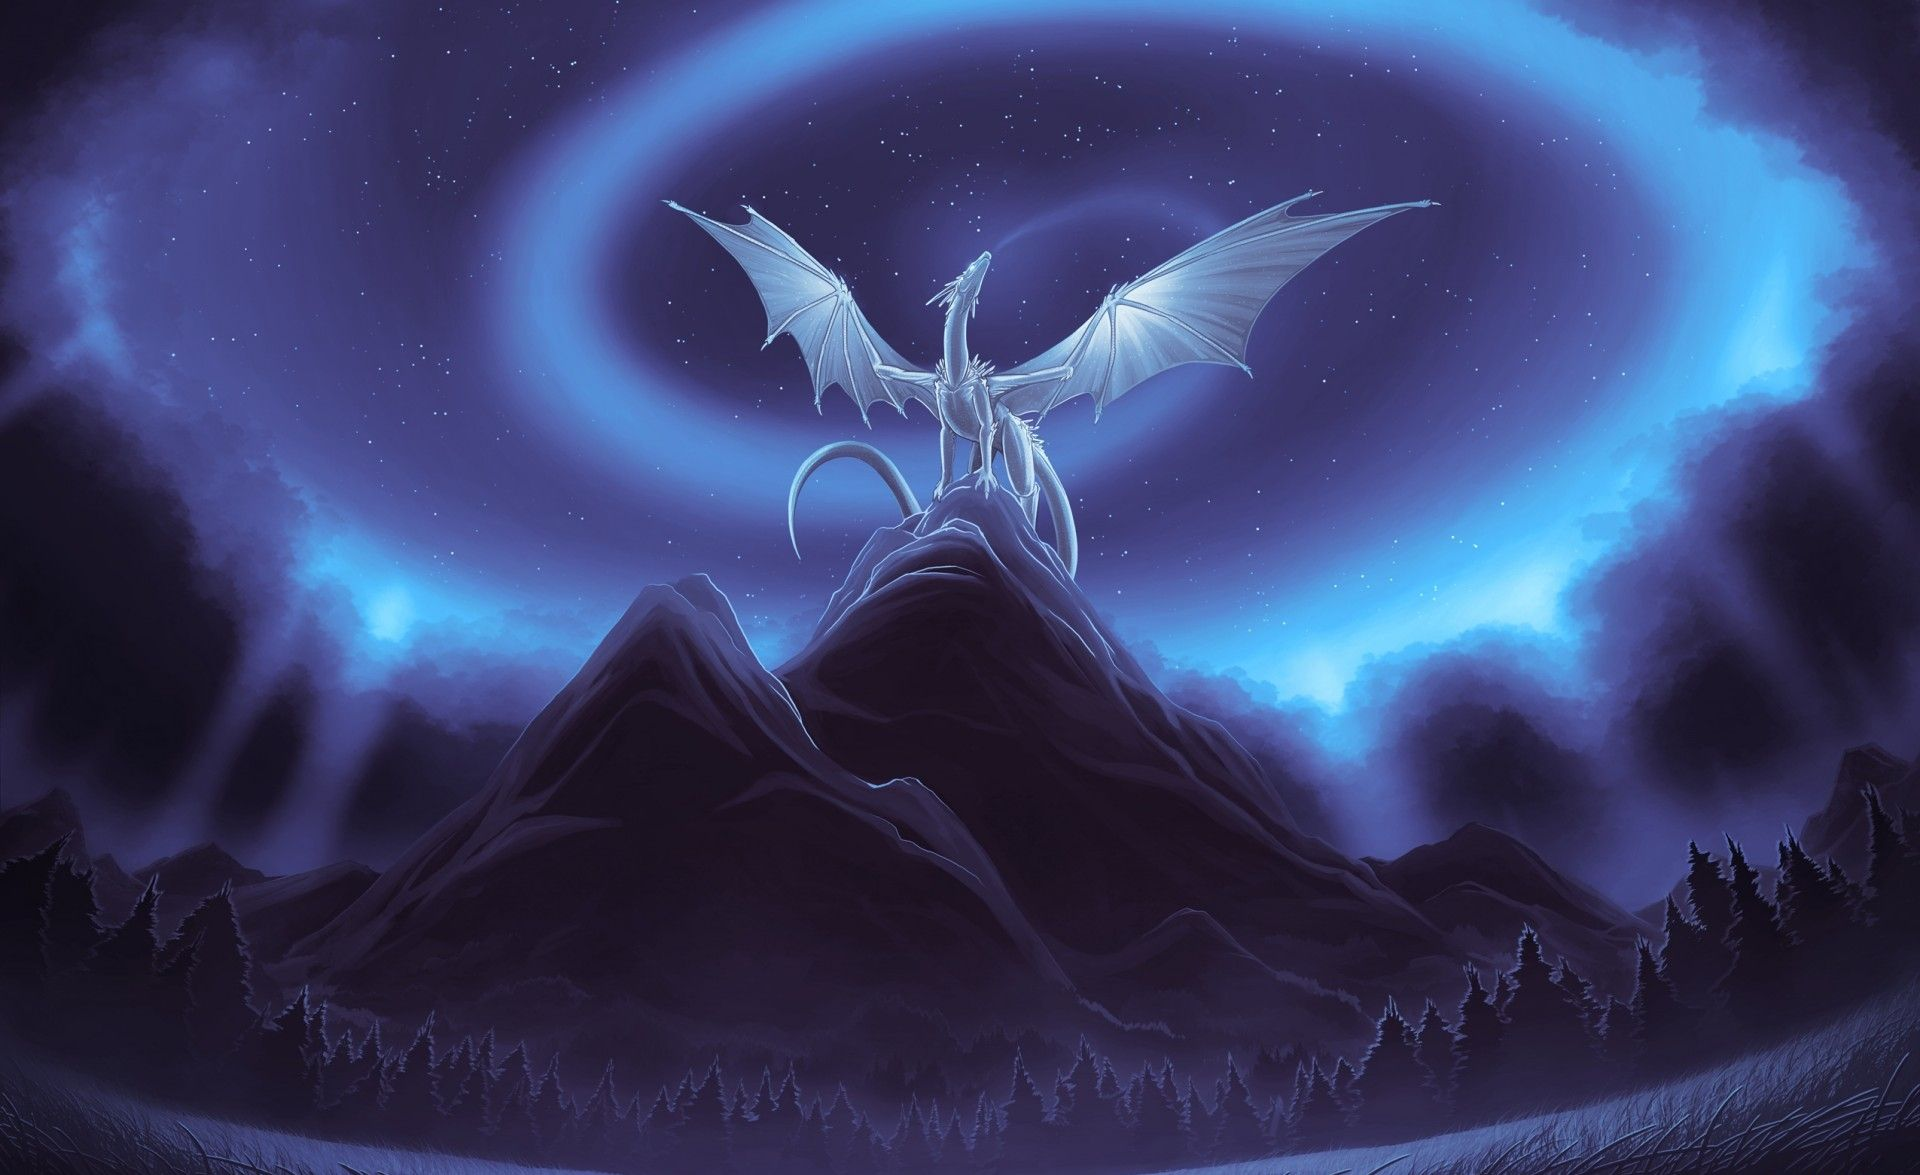 epic dragon wallpaper dump in love with dragons ω